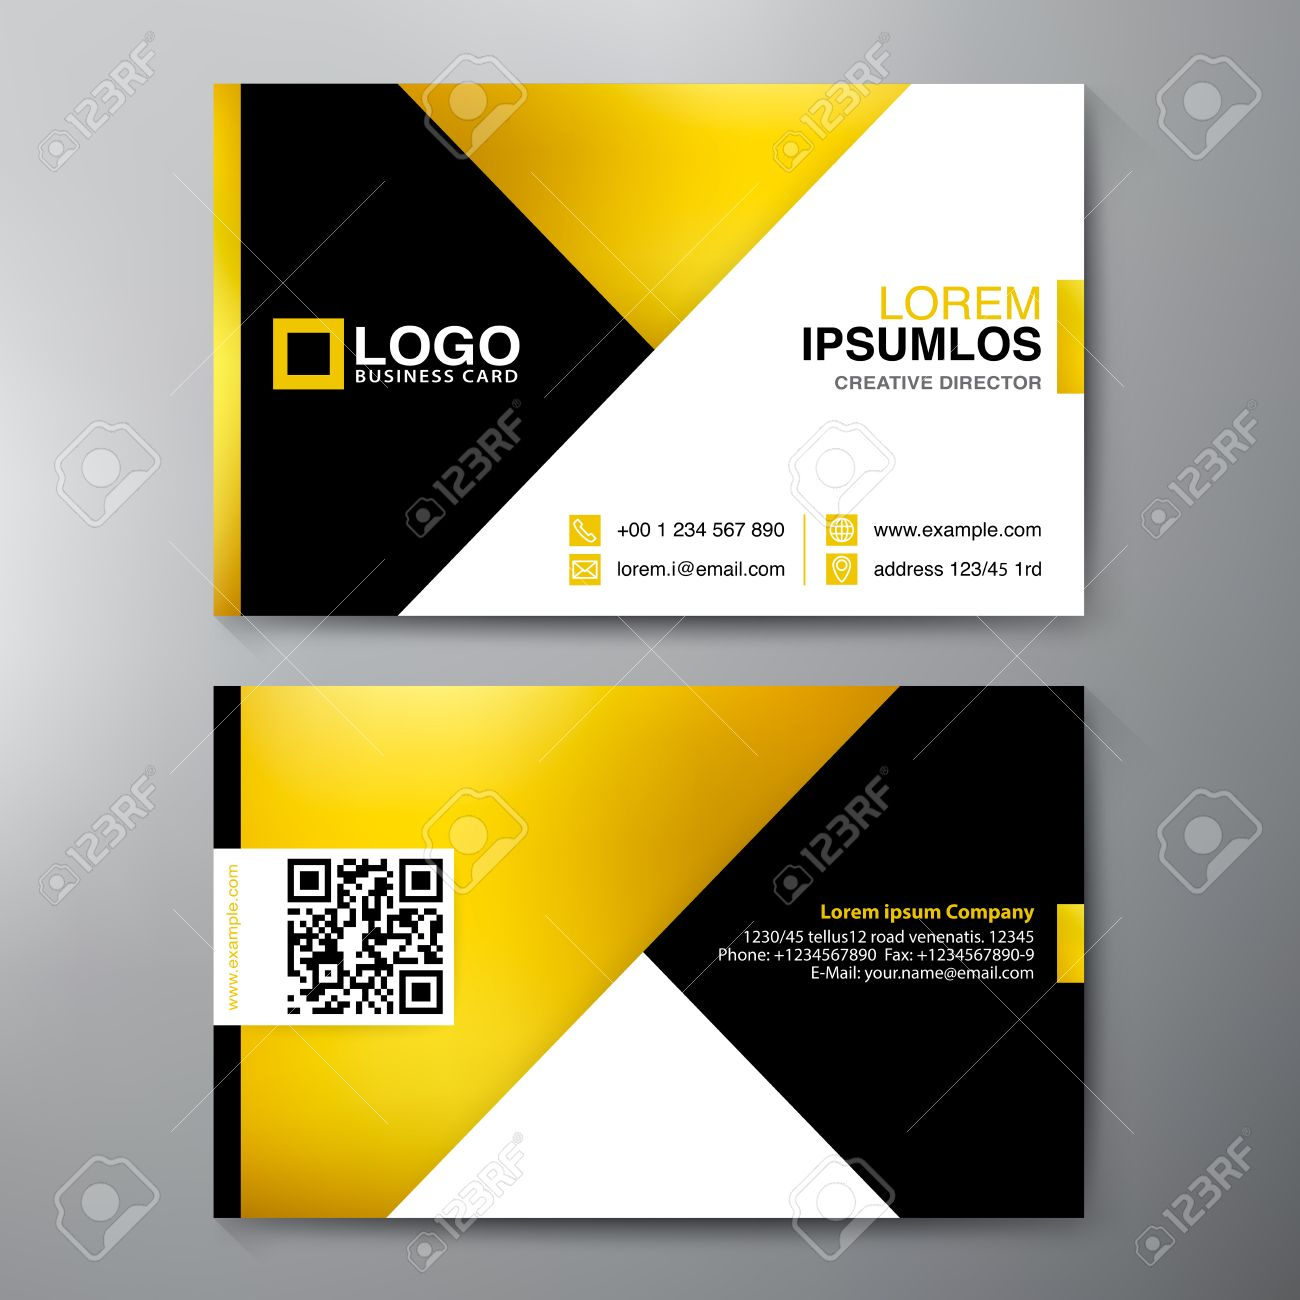 Modern Business Card Design Template. Vector Illustration Royalty ...